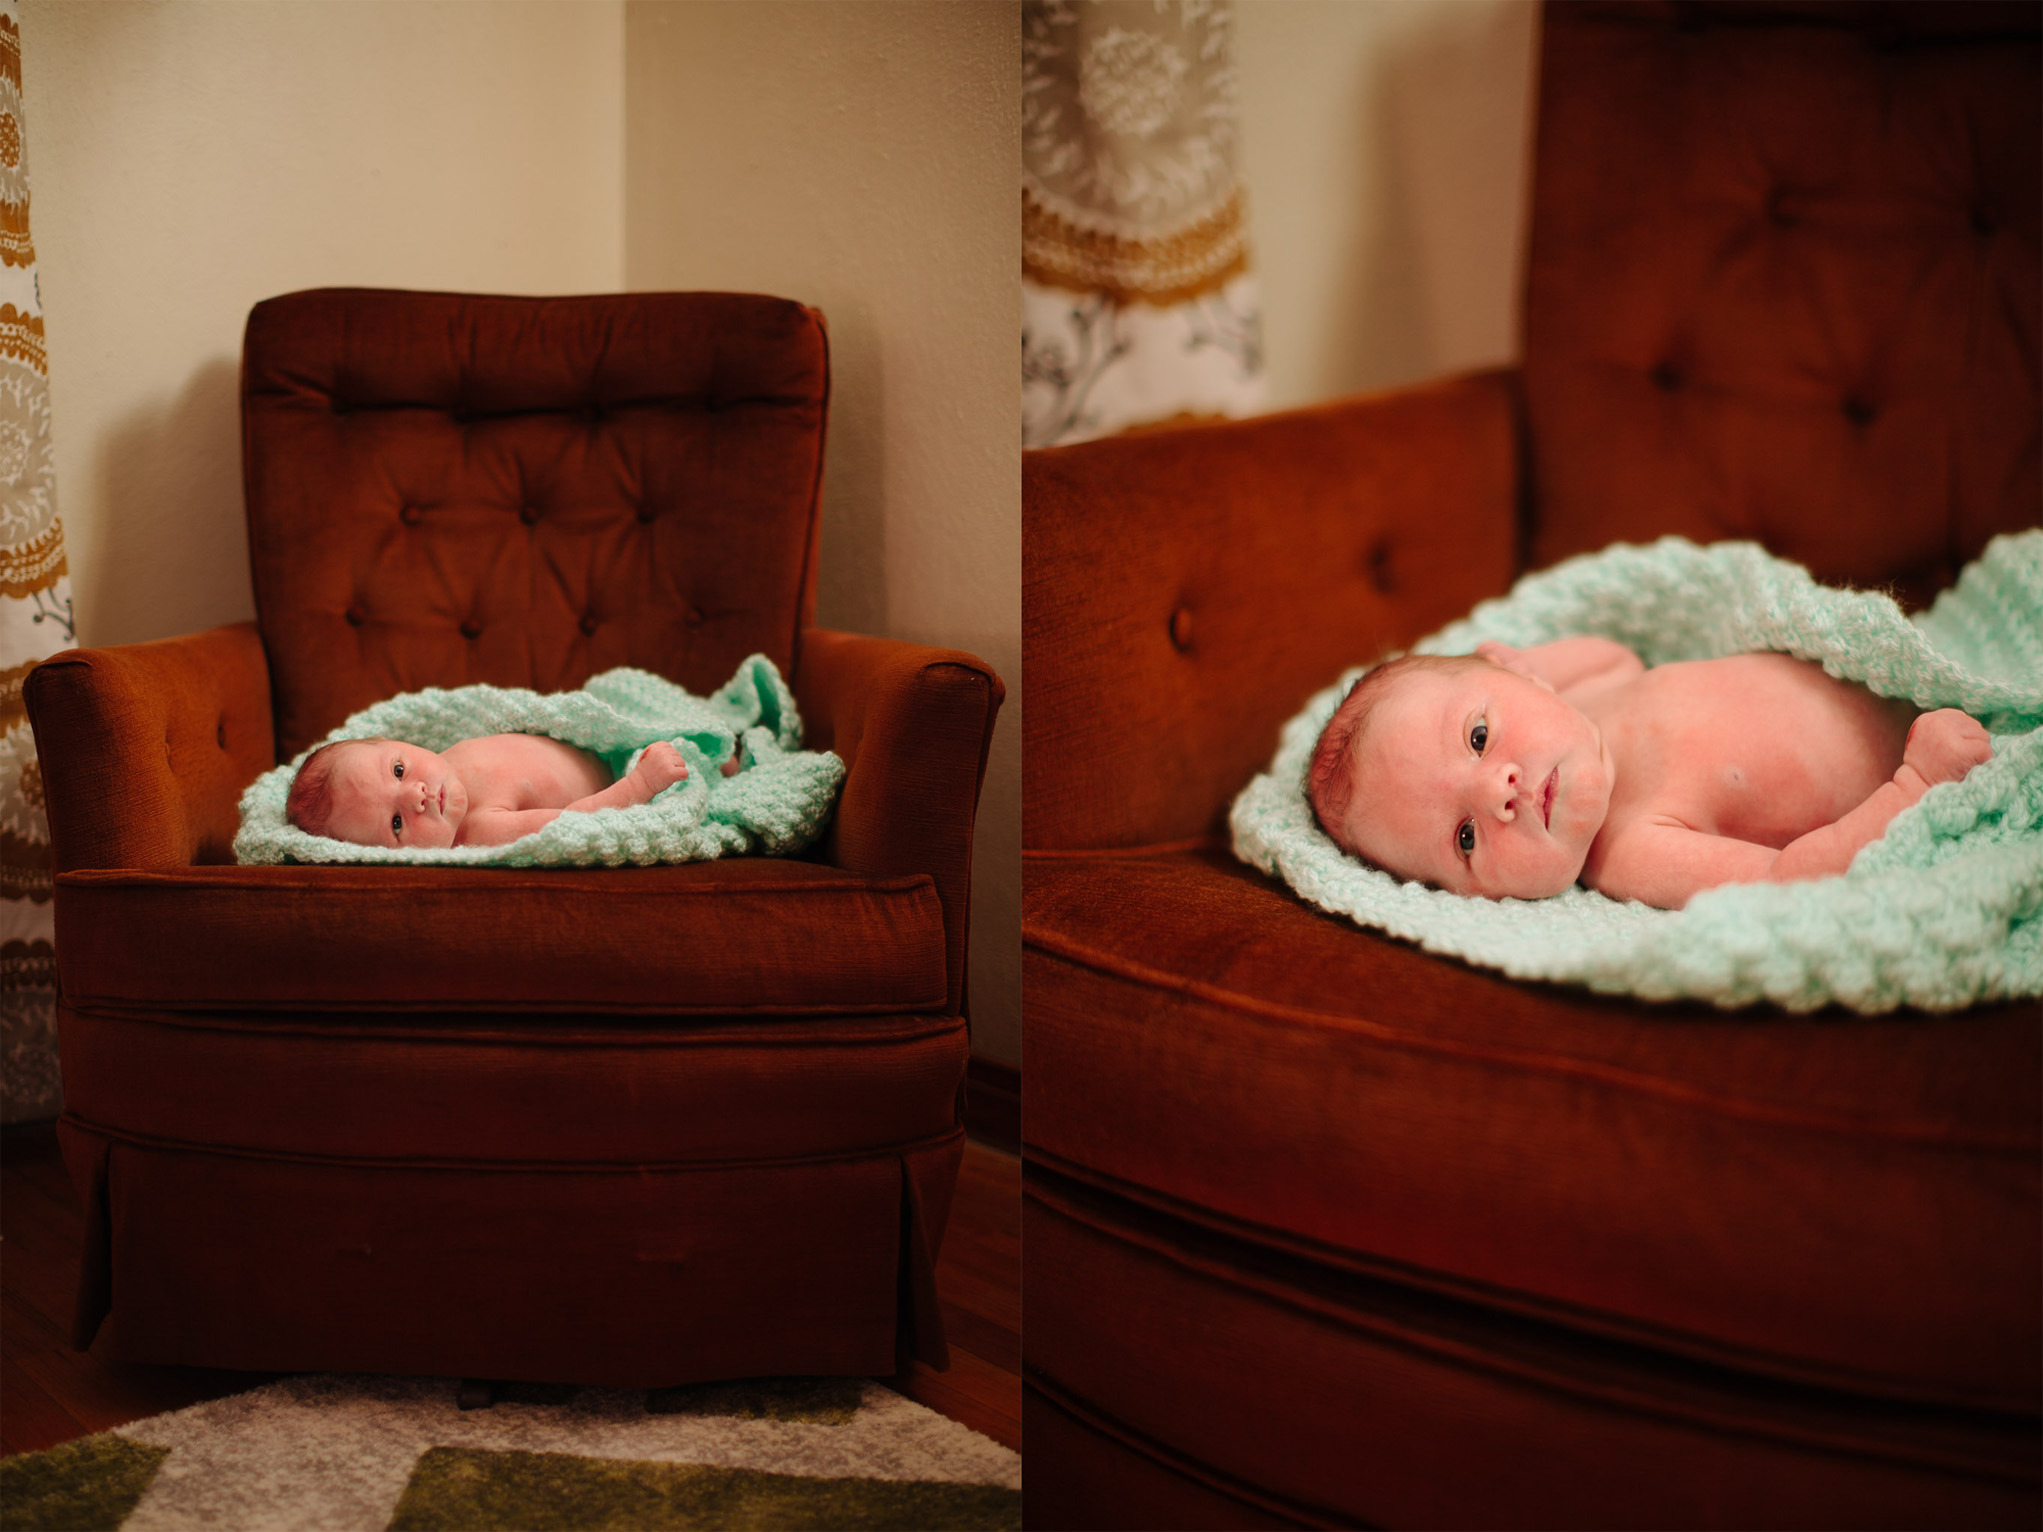 bowman_newborn_blog_tierney_cyanne_photography_4.jpg